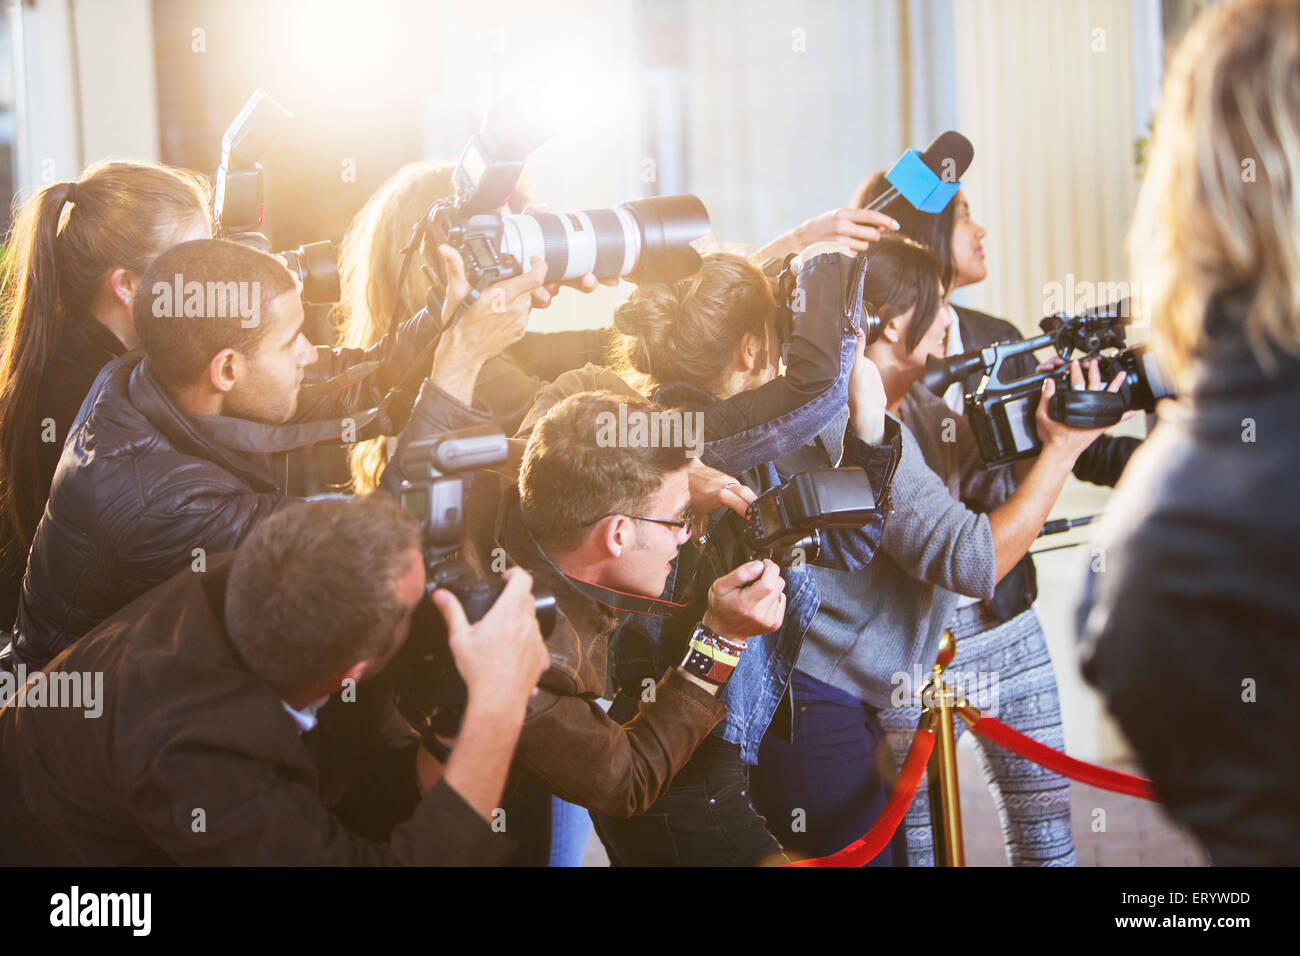 Paparazzi Photographers At Red Carpet Event Stock Photo 83591241